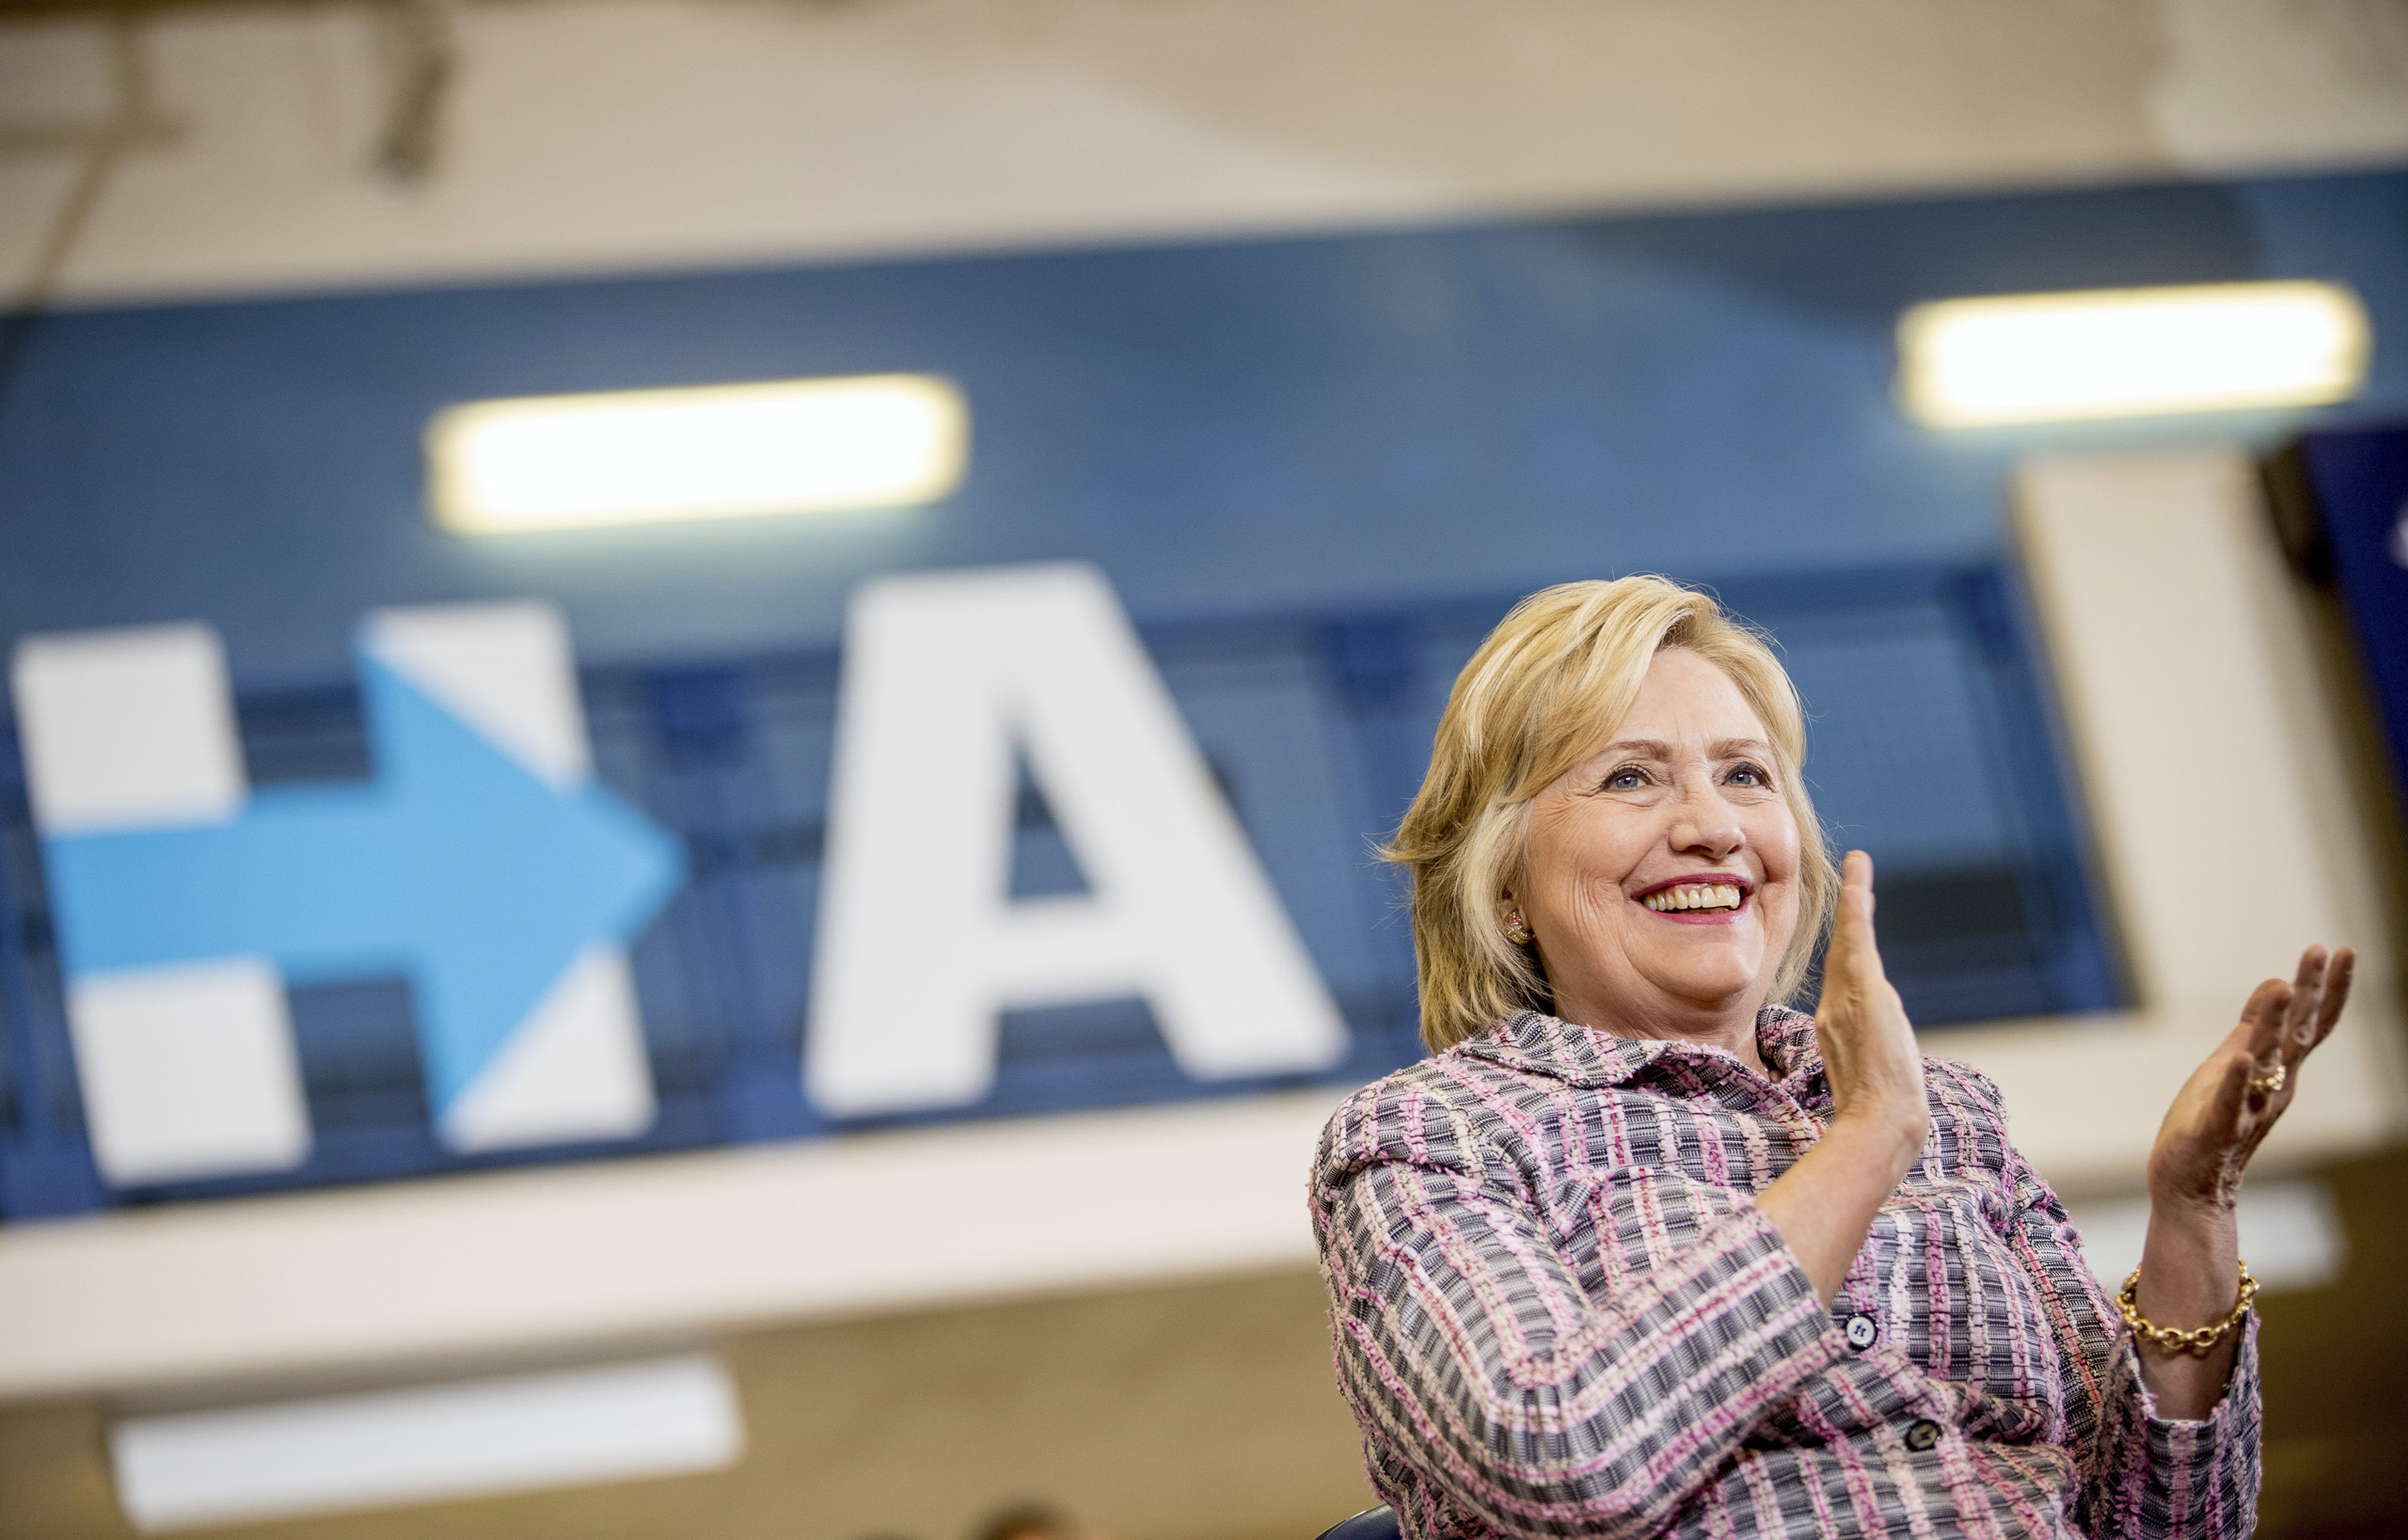 Democratic presidential candidate Hillary Clinton applauds as she sits on stage at a rally at Omaha North High Magnet School in Omaha, Neb. on Aug. 1, 2016.